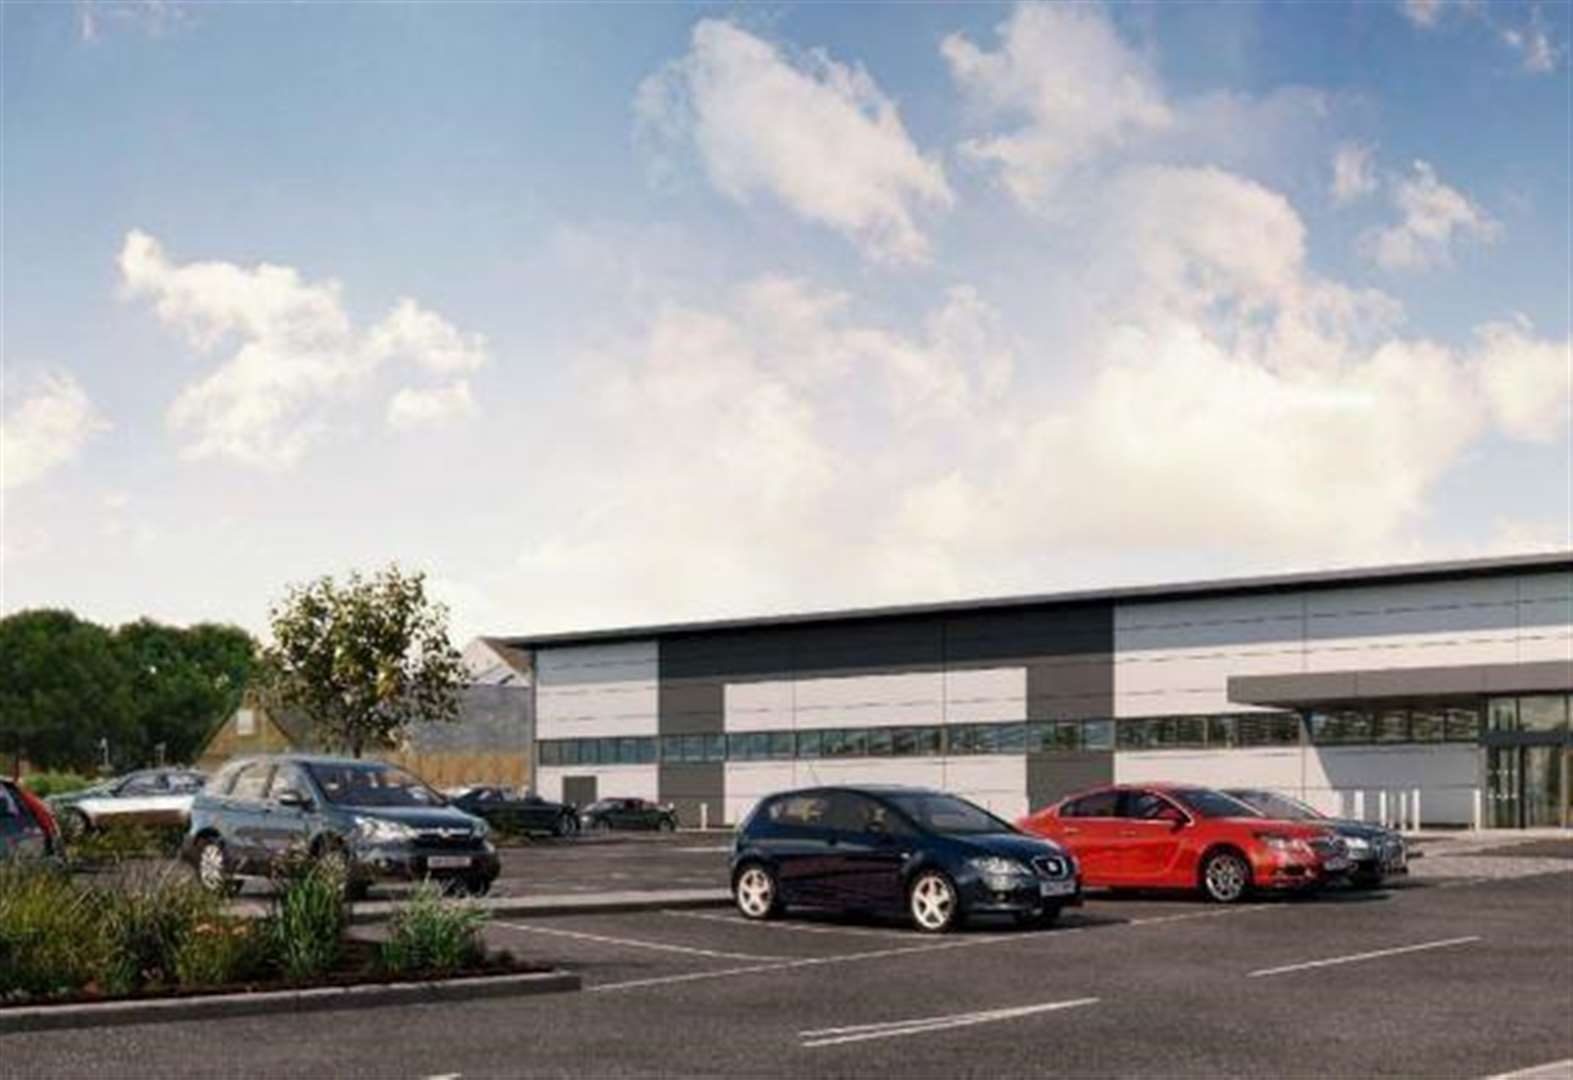 Plans submitted for larger Aldi